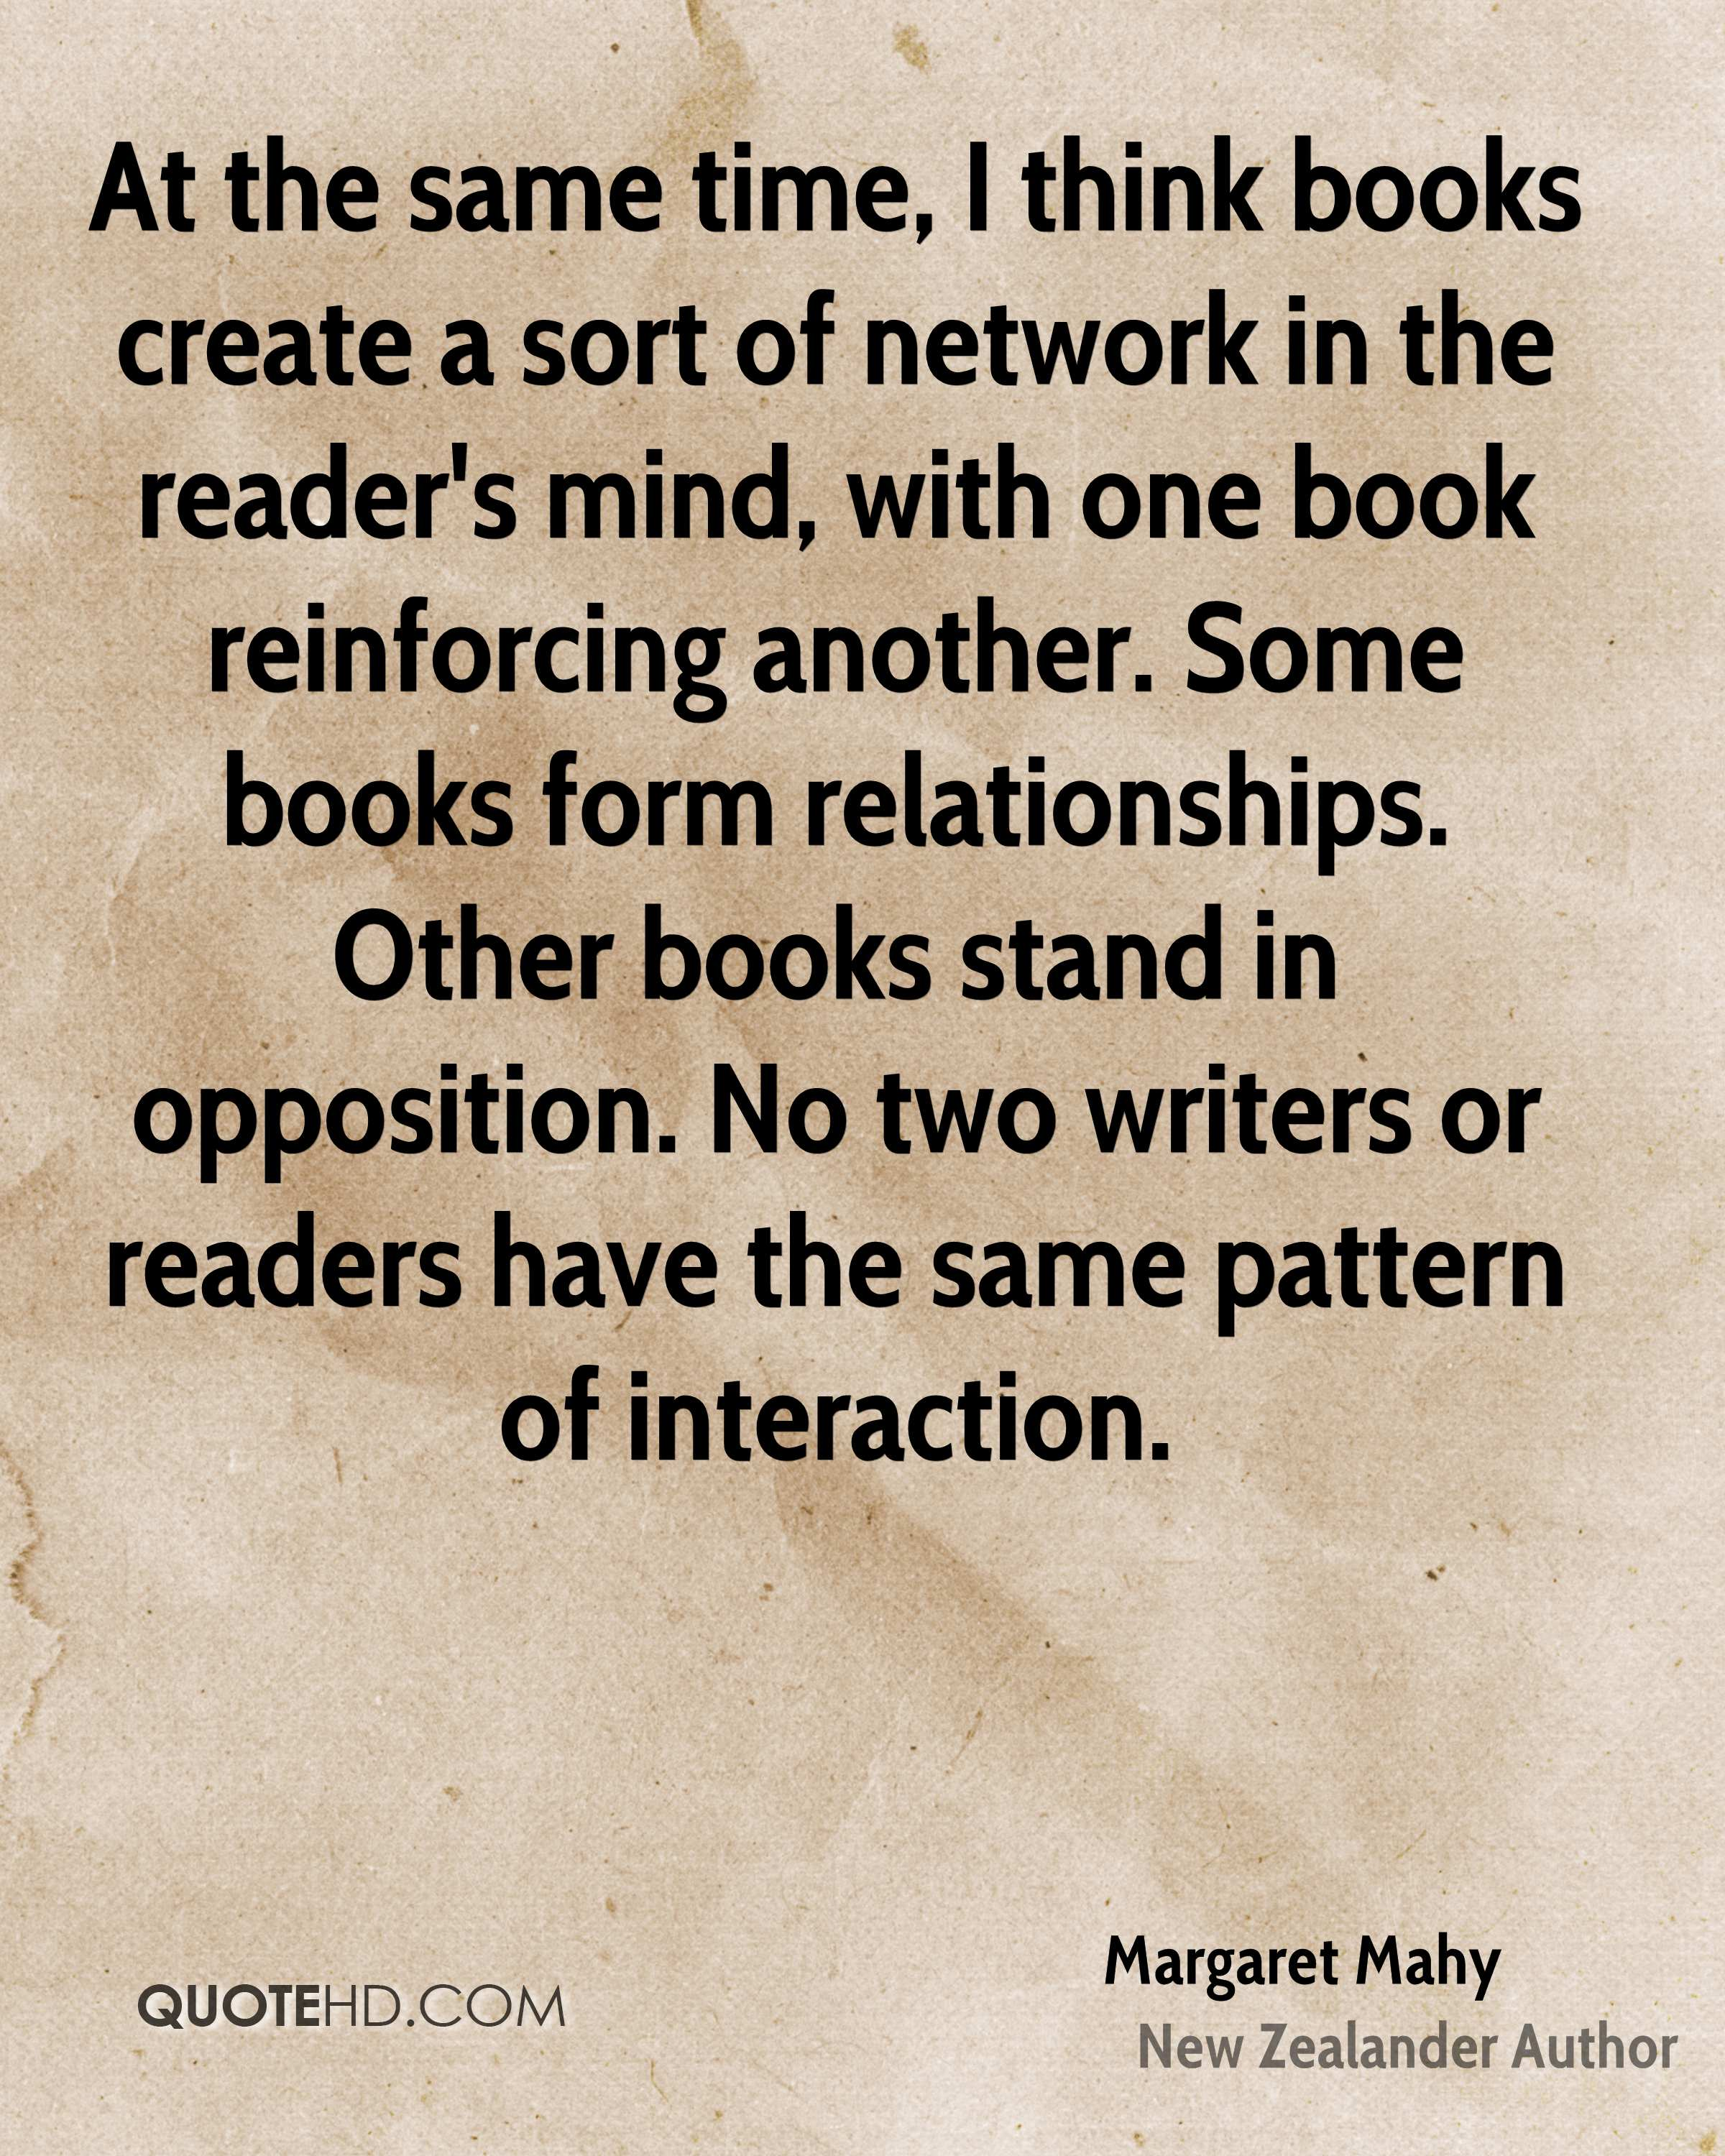 At the same time, I think books create a sort of network in the reader's mind, with one book reinforcing another. Some books form relationships. Other books stand in opposition. No two writers or readers have the same pattern of interaction.